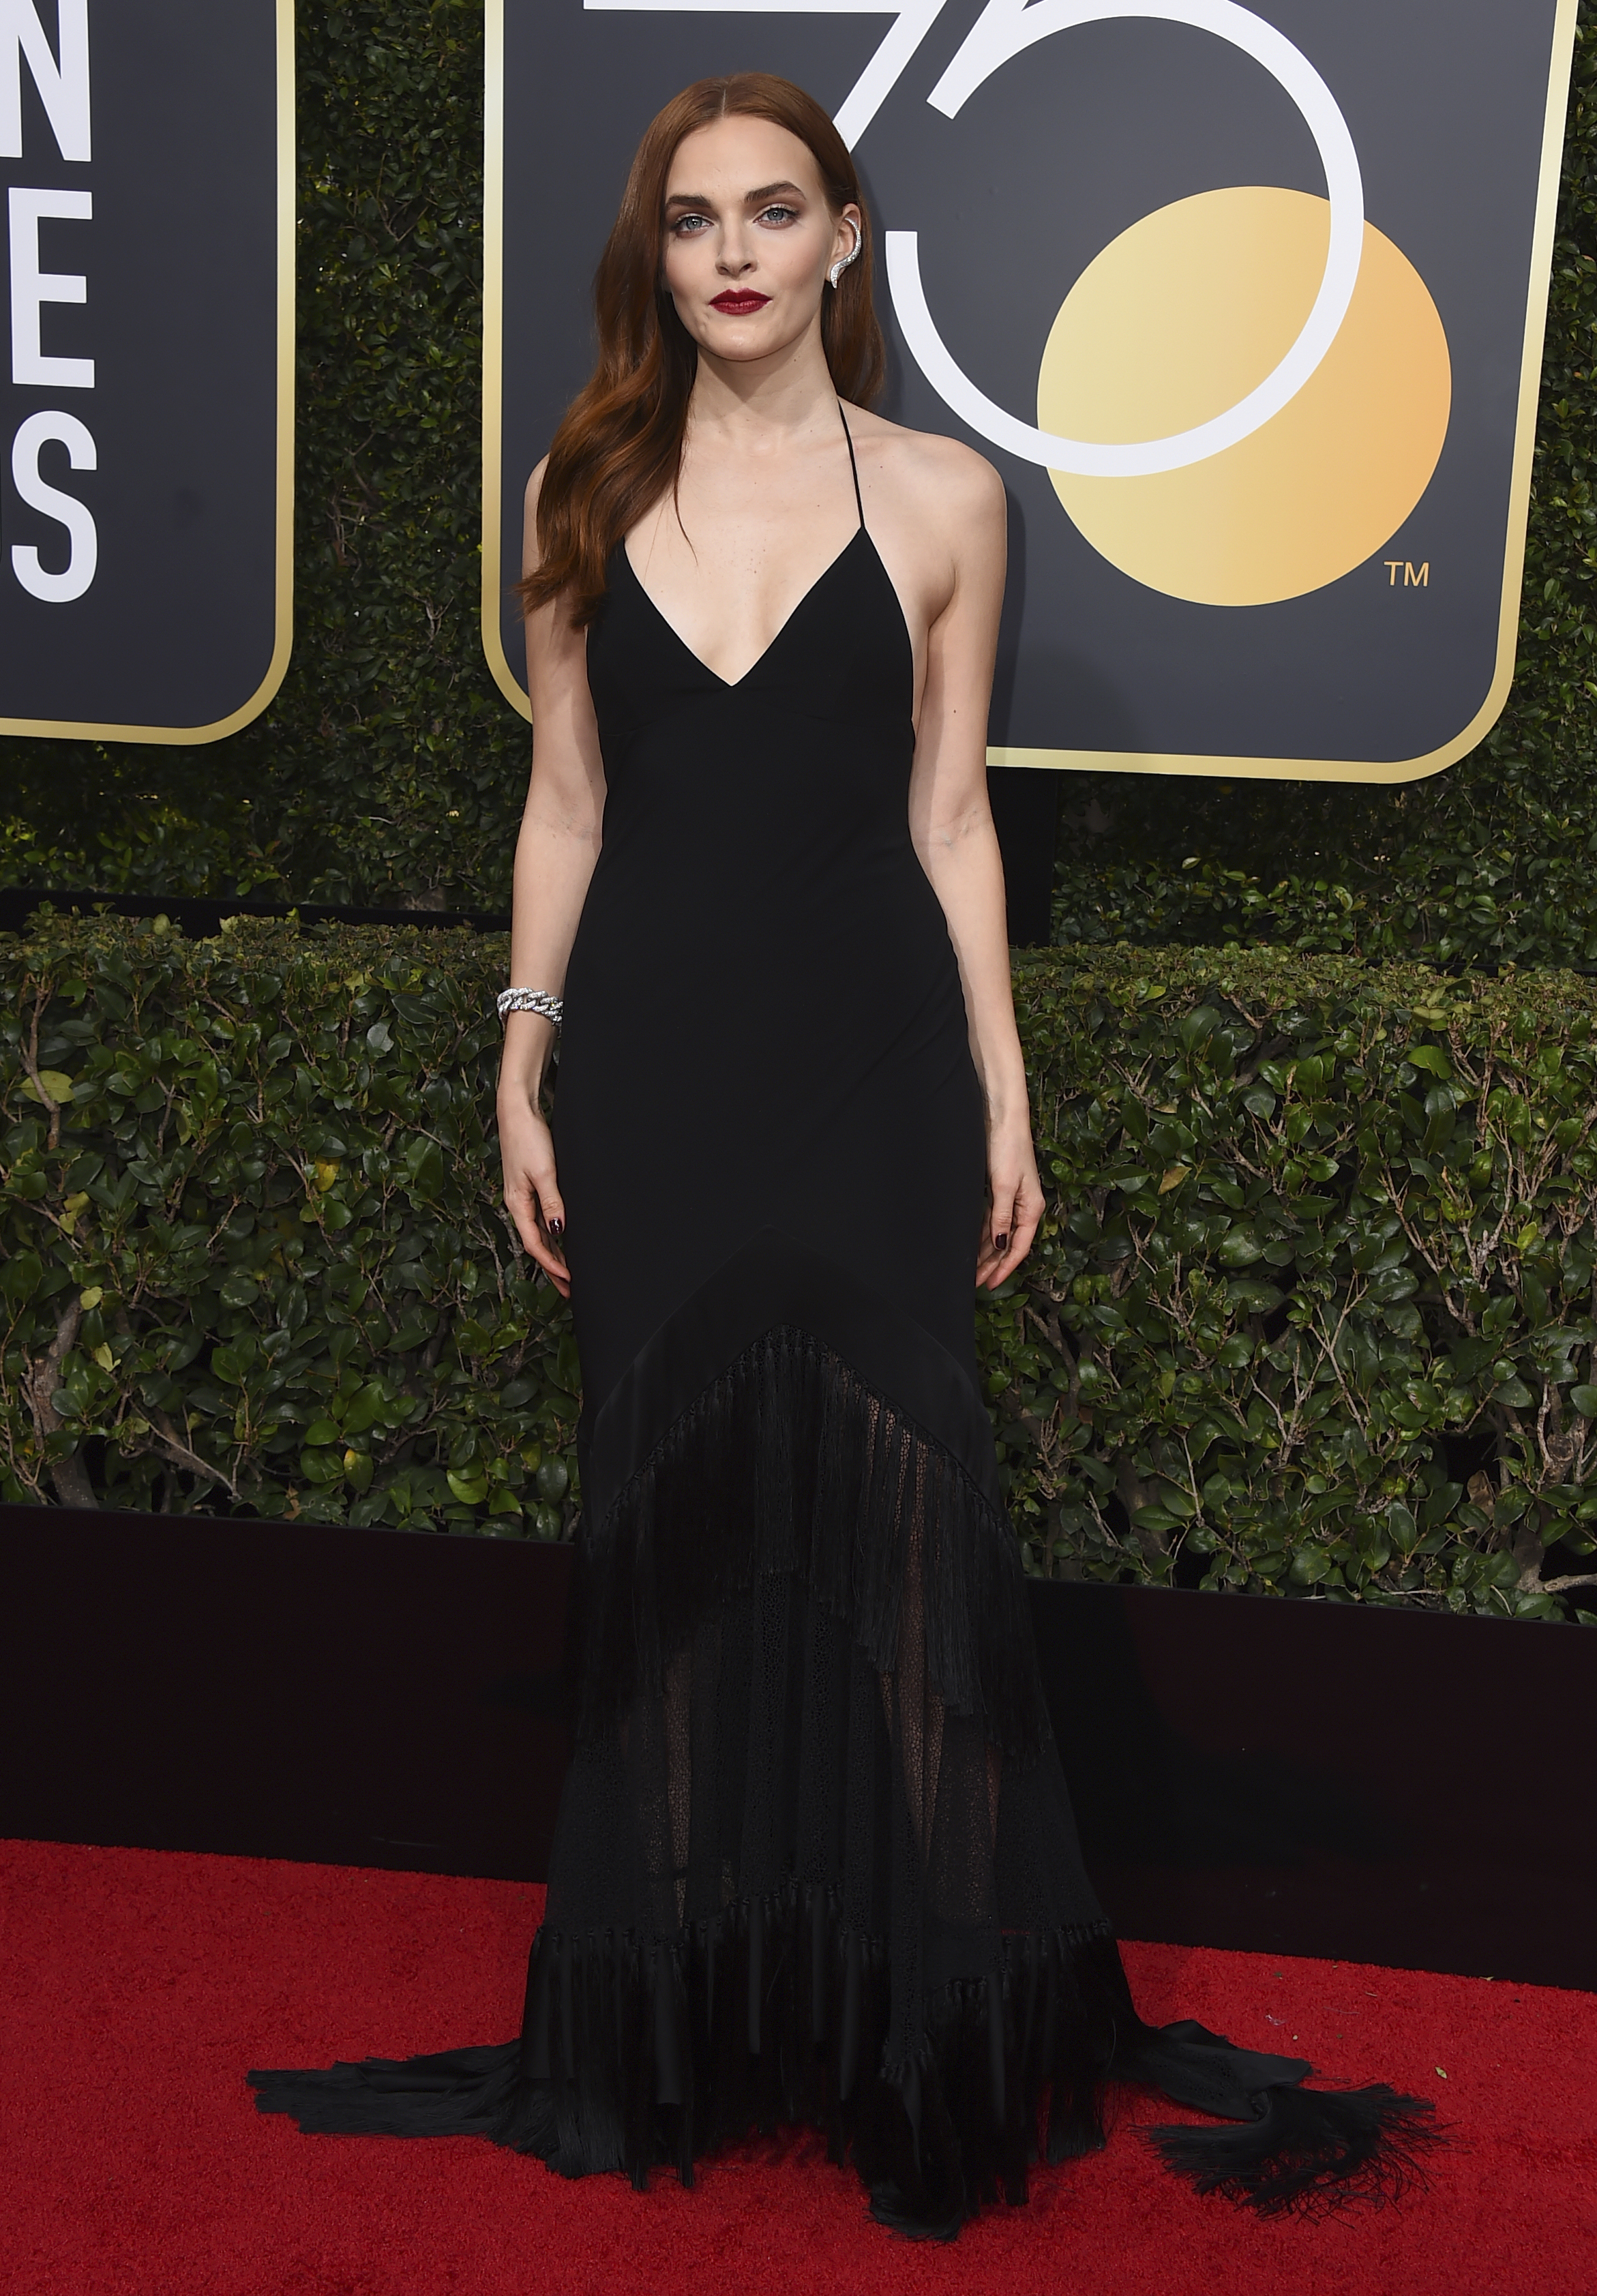 <div class='meta'><div class='origin-logo' data-origin='AP'></div><span class='caption-text' data-credit='Jordan Strauss/Invision/AP'>Madeline Brewer arrives at the 75th annual Golden Globe Awards at the Beverly Hilton Hotel on Sunday, Jan. 7, 2018, in Beverly Hills, Calif.</span></div>